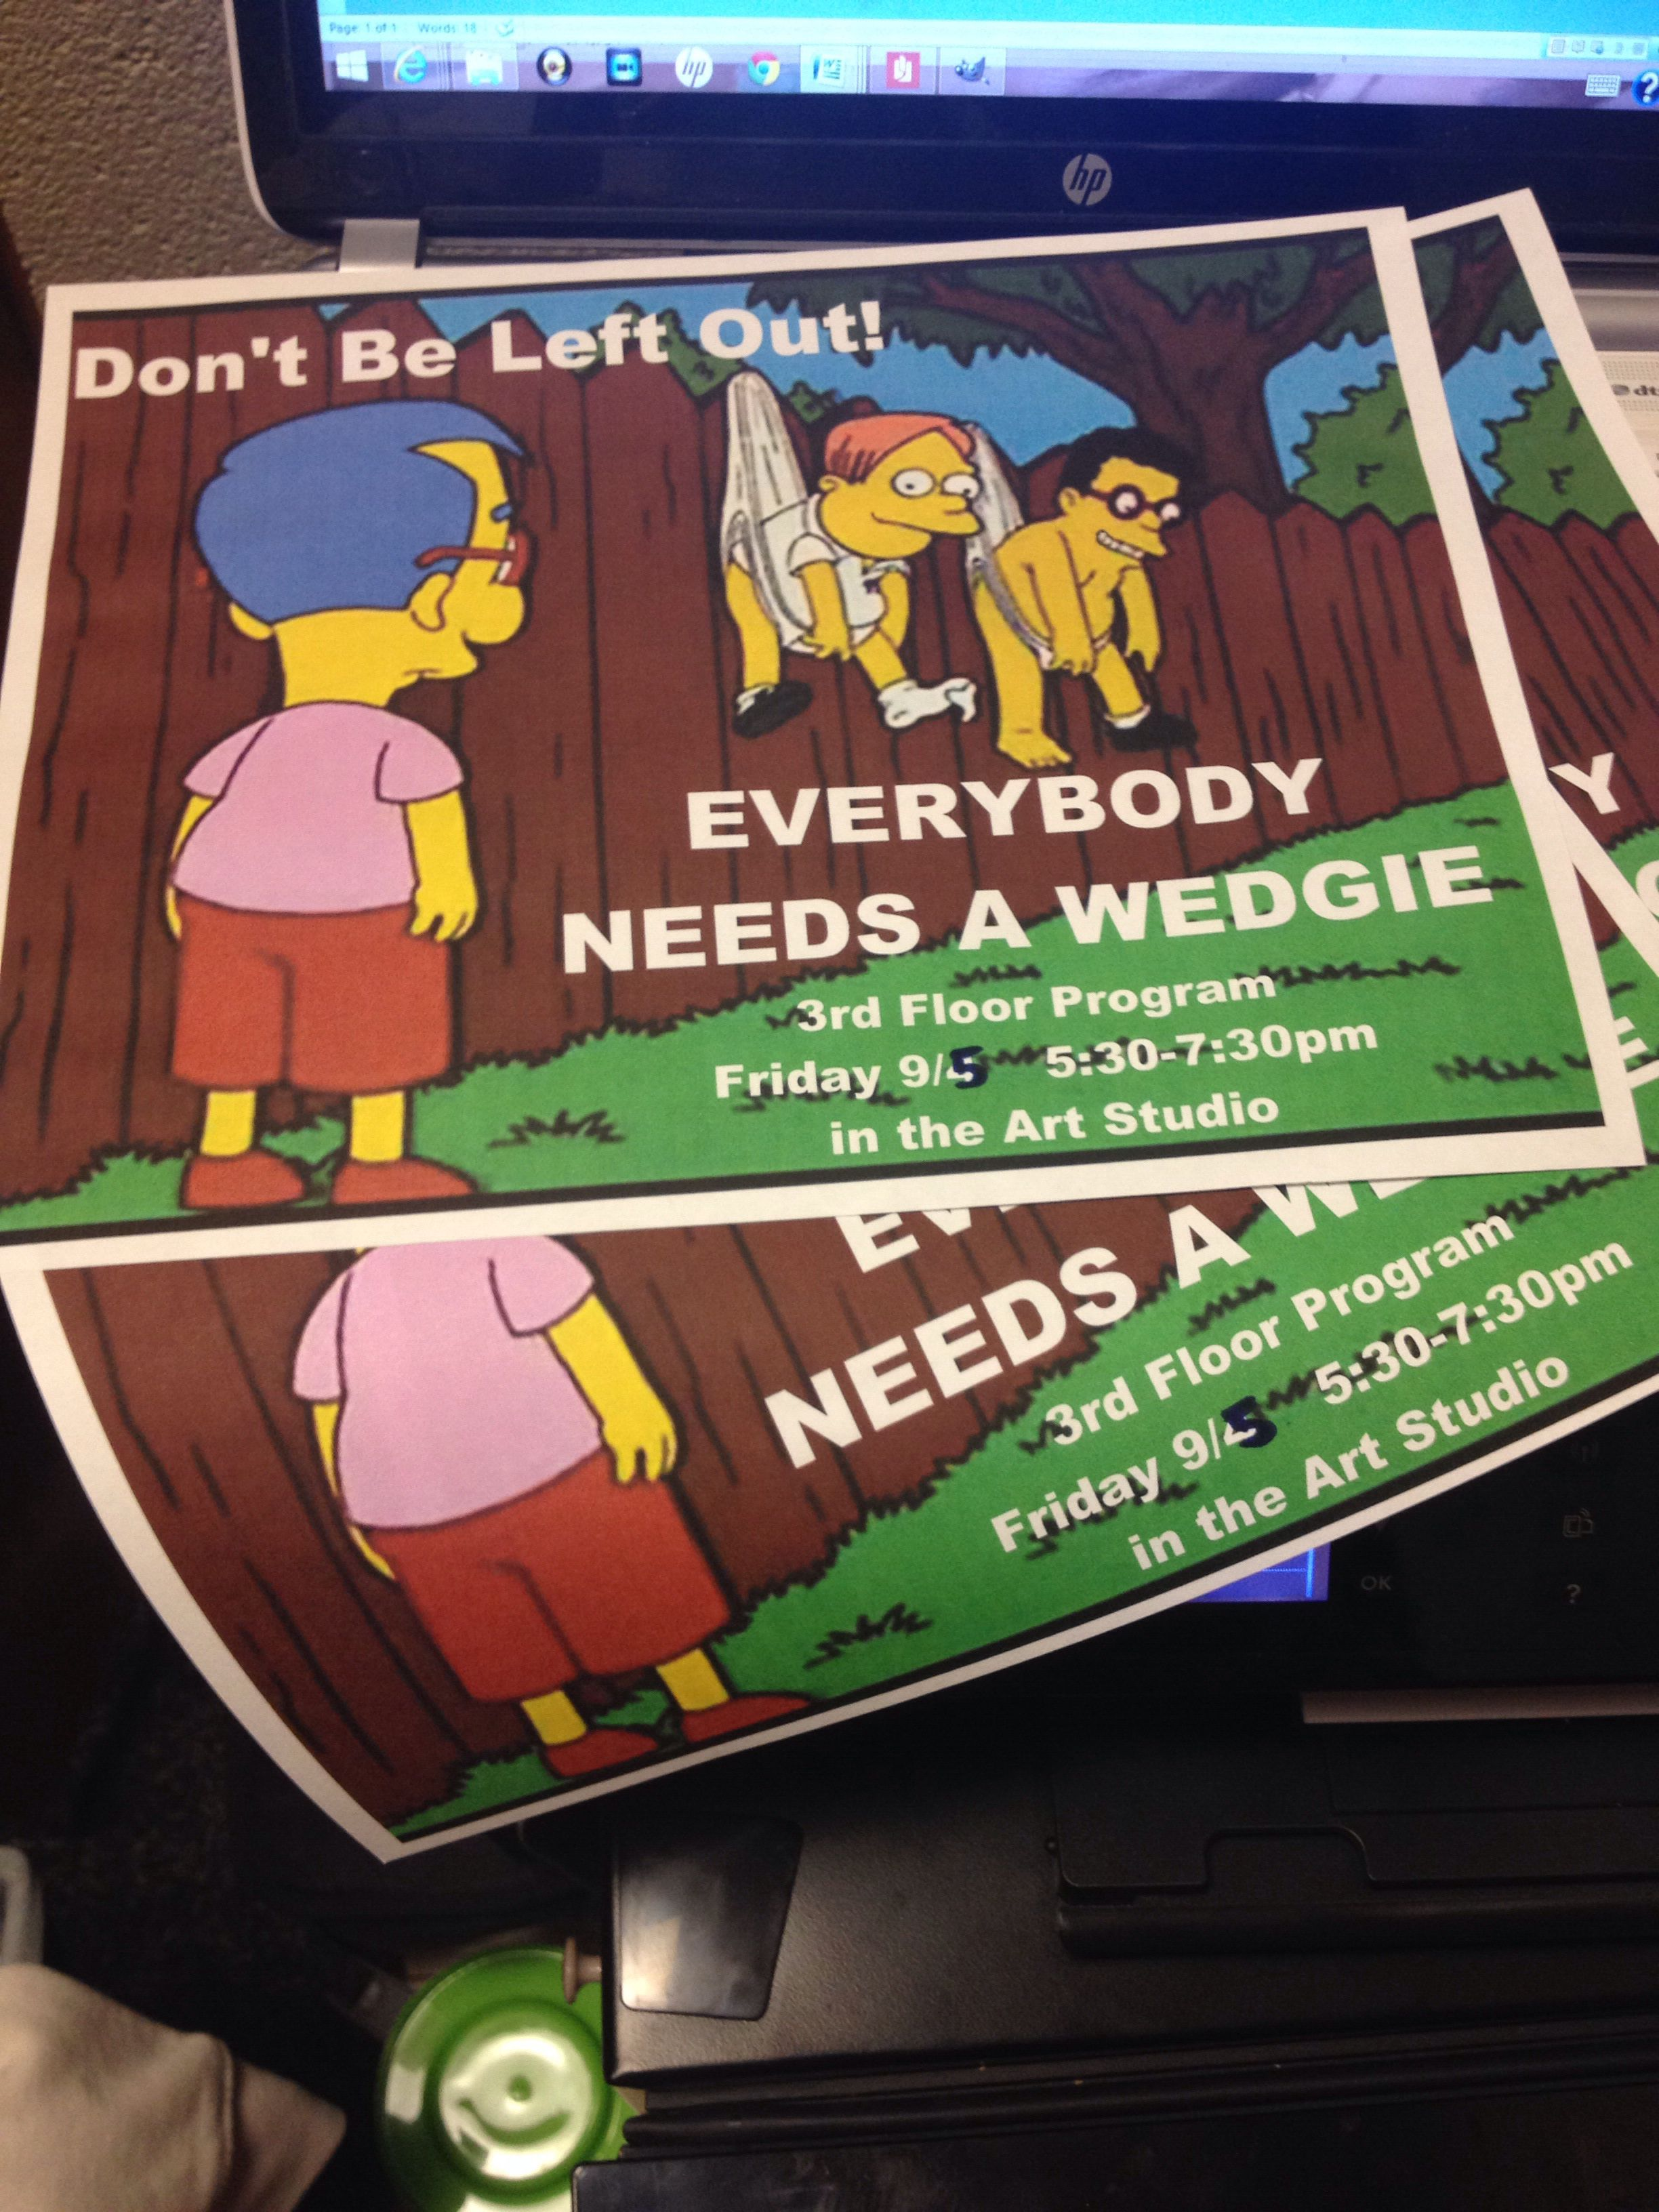 """Flyers for my """"Everybody Needs A Wedgie"""" community program as an RA at JMU where residents will decorate door wedges, eat cookies, and socialize! (Had to photoshop smiles on the Simpsons character hehe)"""